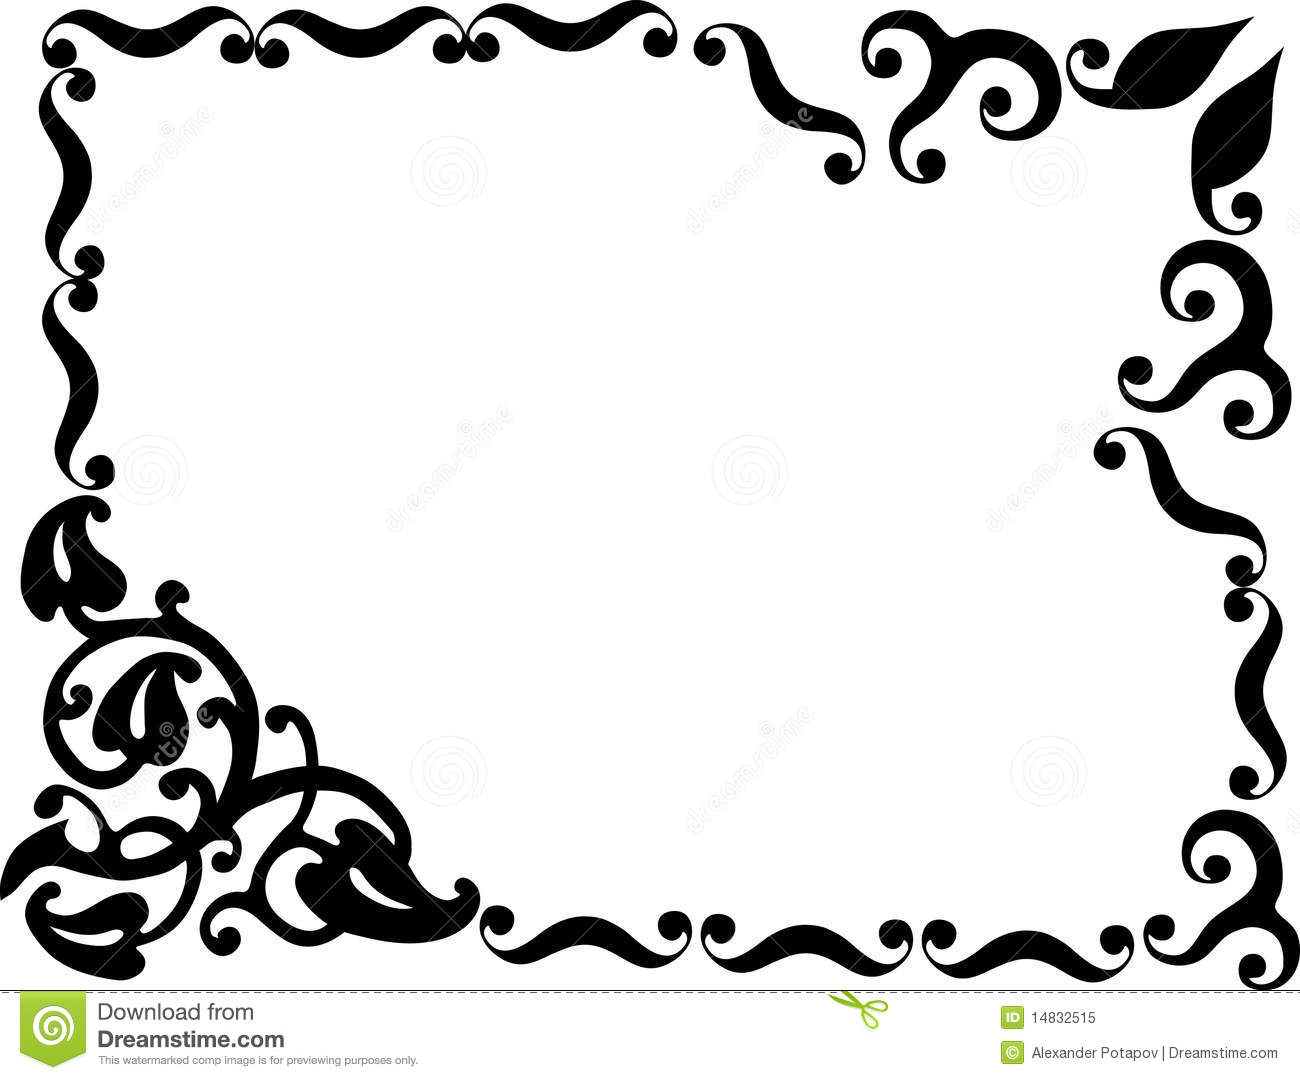 Simple Design With Black Frame Stock Vector Illustration Of Part